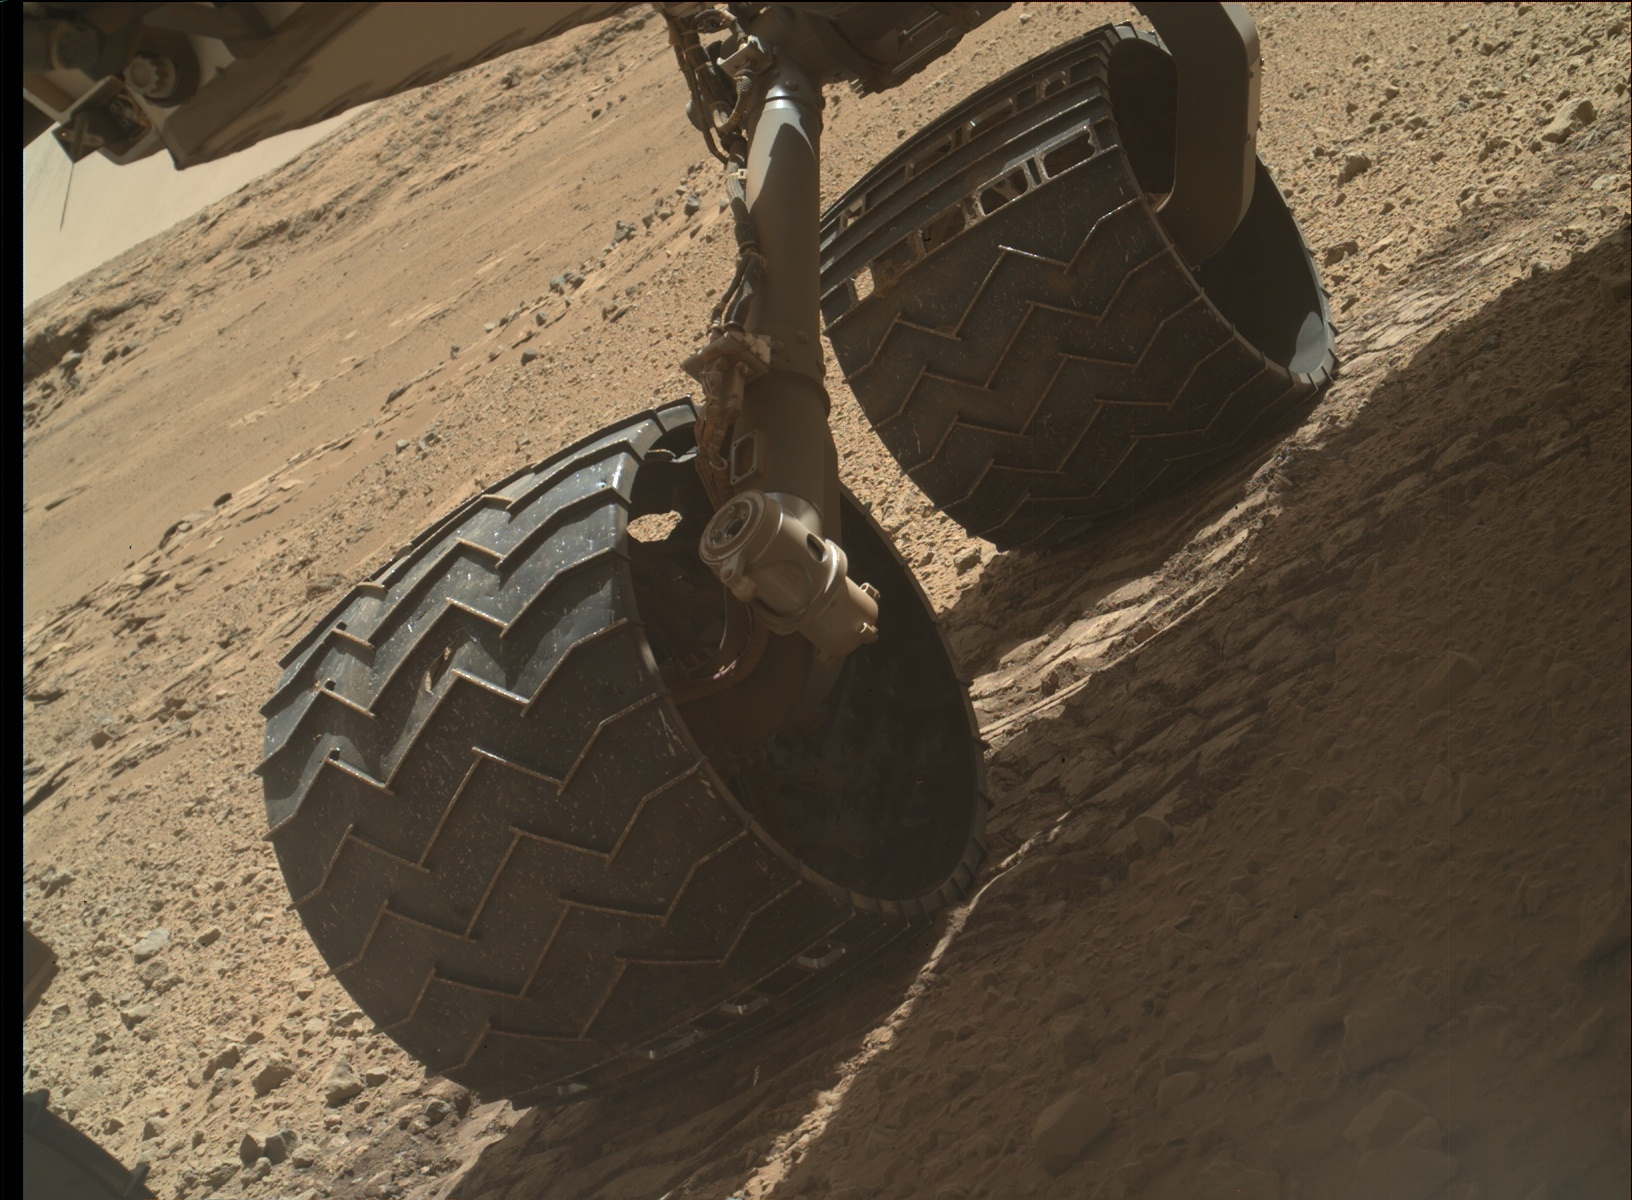 Nasa's Mars rover Curiosity acquired this image using its Mars Hand Lens Imager (MAHLI) on Sol 587